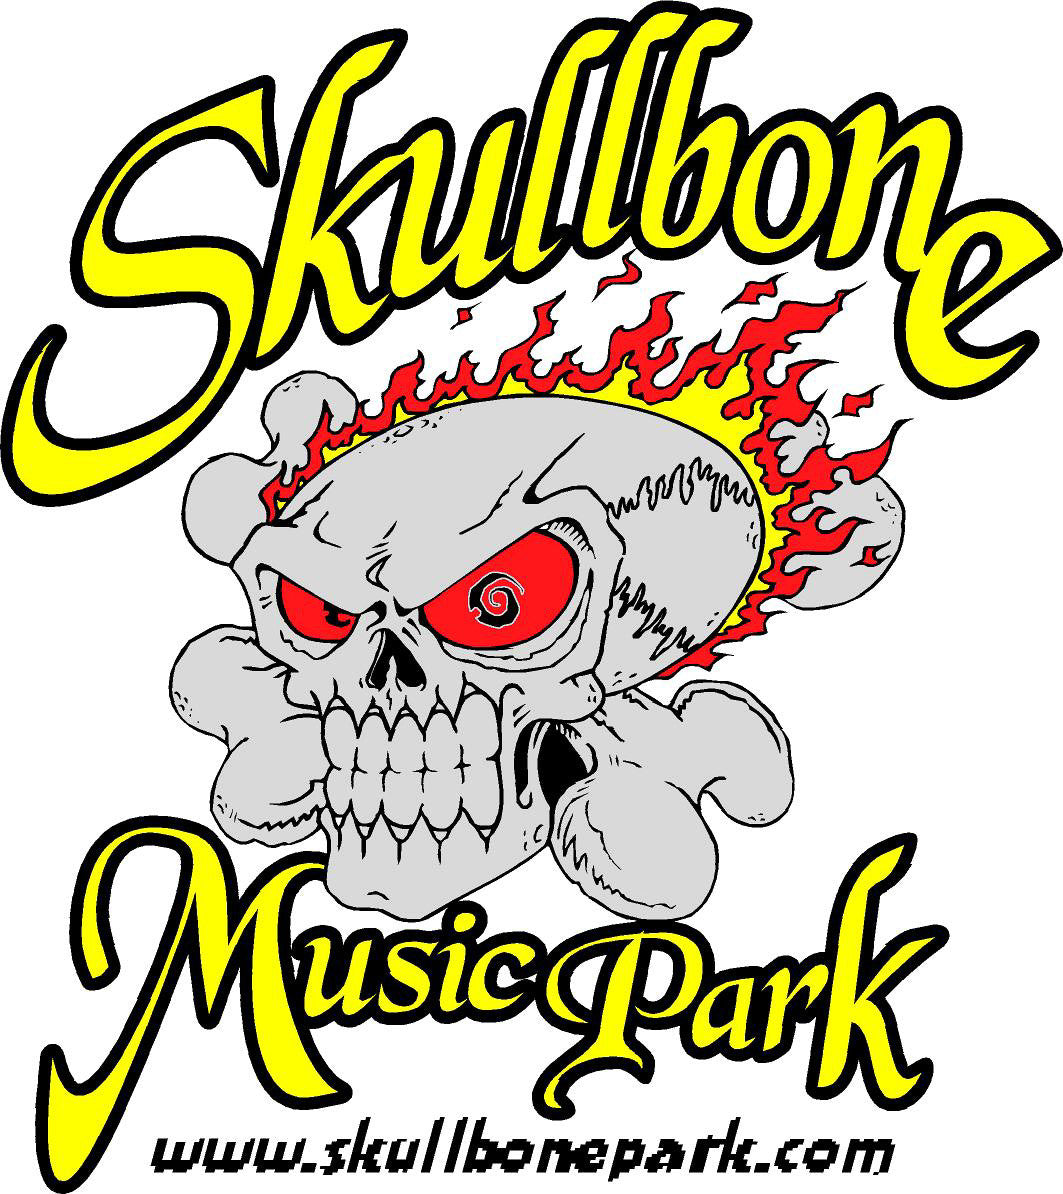 Skullbone Music Park is Back